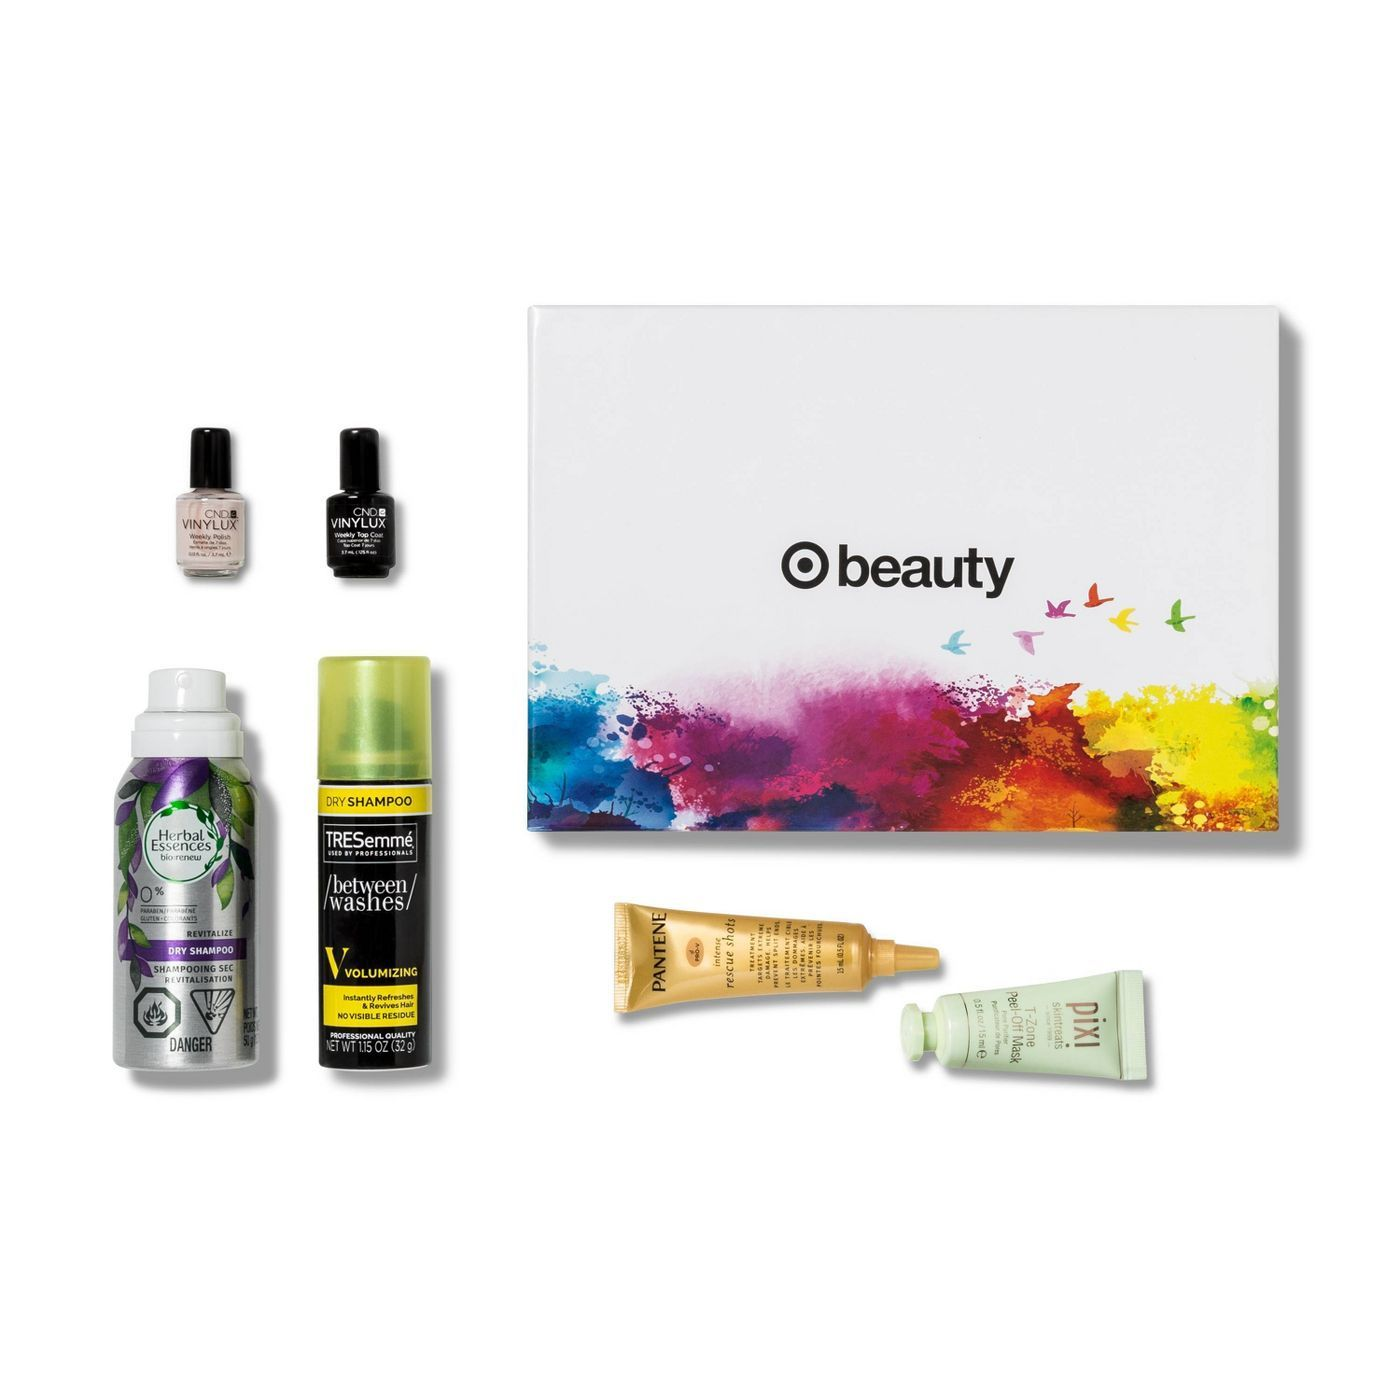 June 2019 Target Beauty Boxes Available Now - $7 Shipped! - hello subscription -   17 target beauty Box ideas